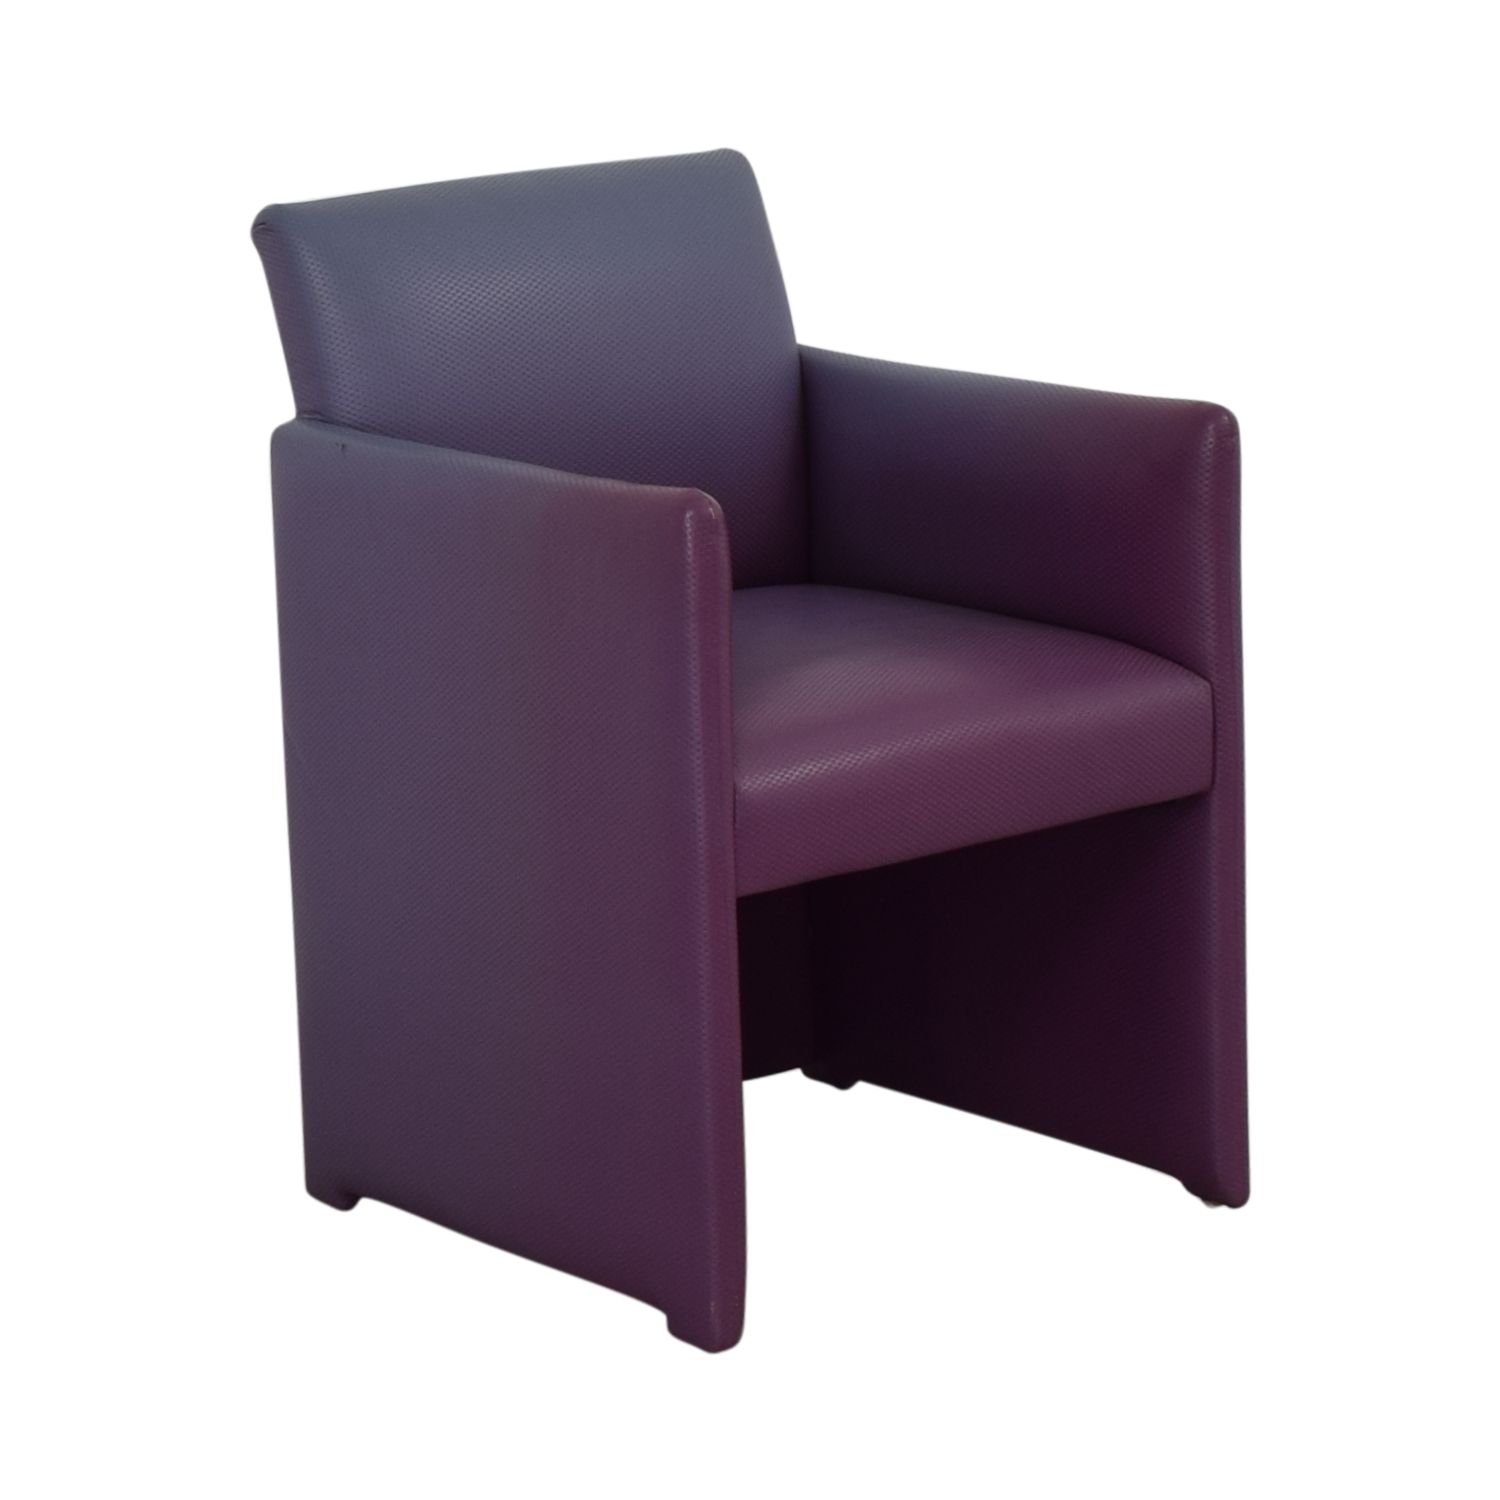 Furniture Masters Furniture Masters Purple Accent Chair nyc